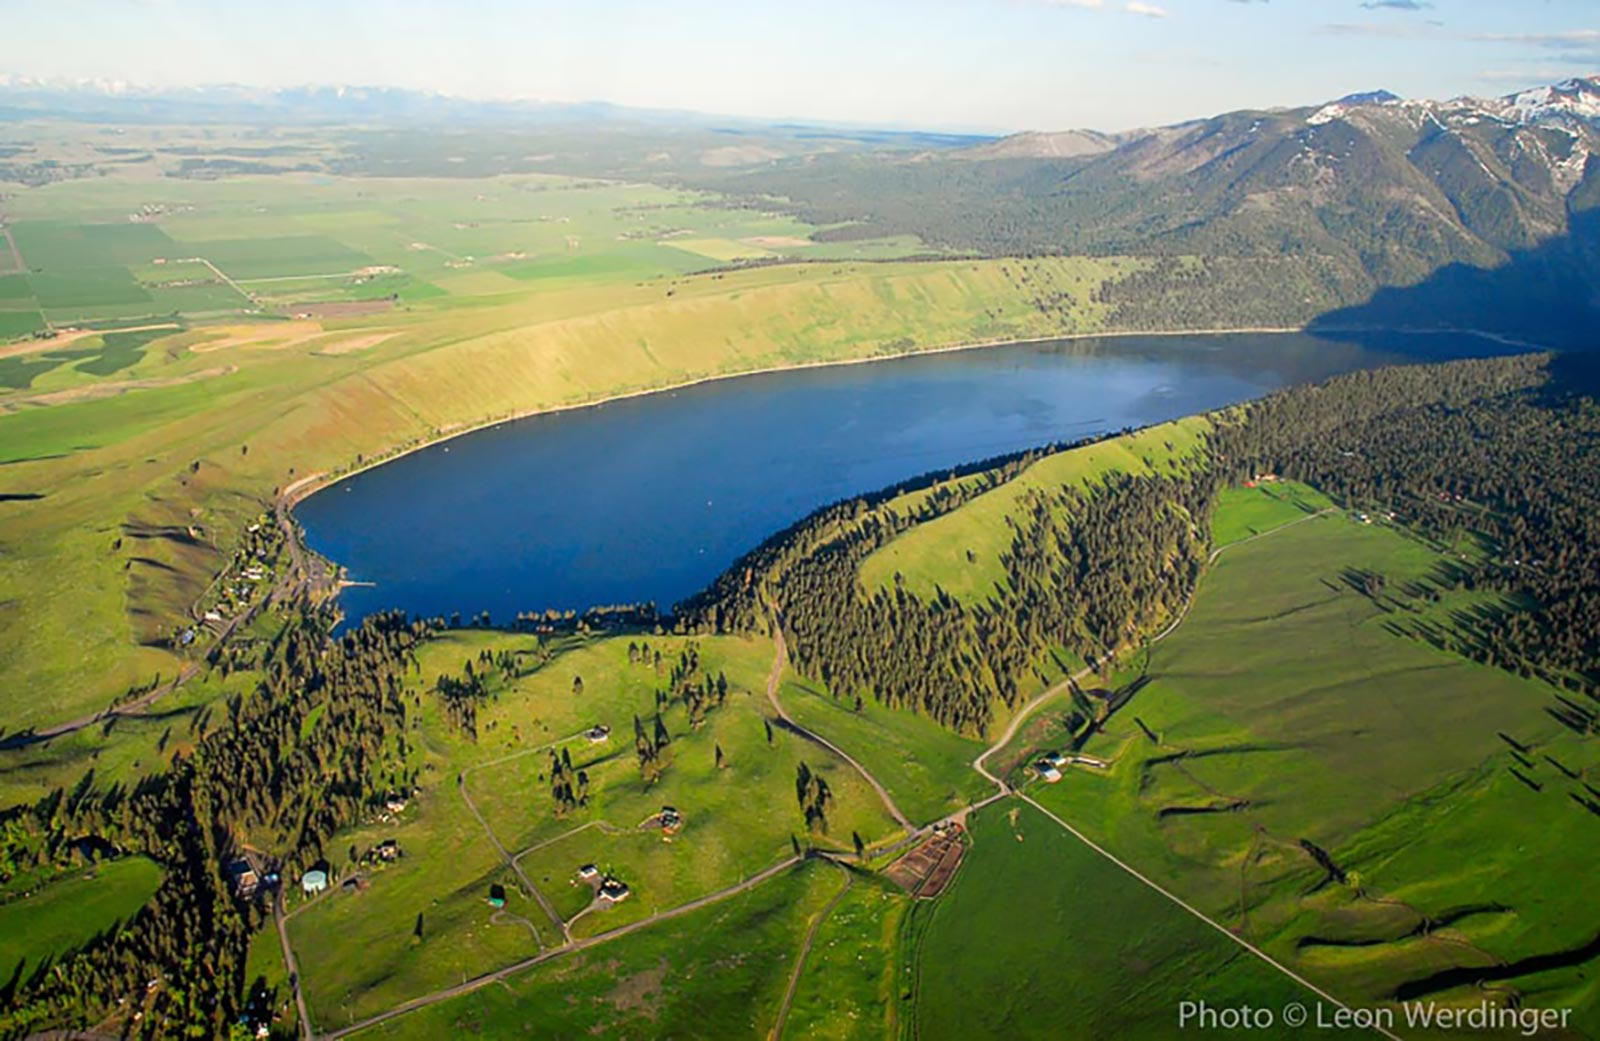 1,791 ACRES OF WALLOWA LAKE'S EAST MORAINE ACQUIRED FOR WALLOWA COUNTY